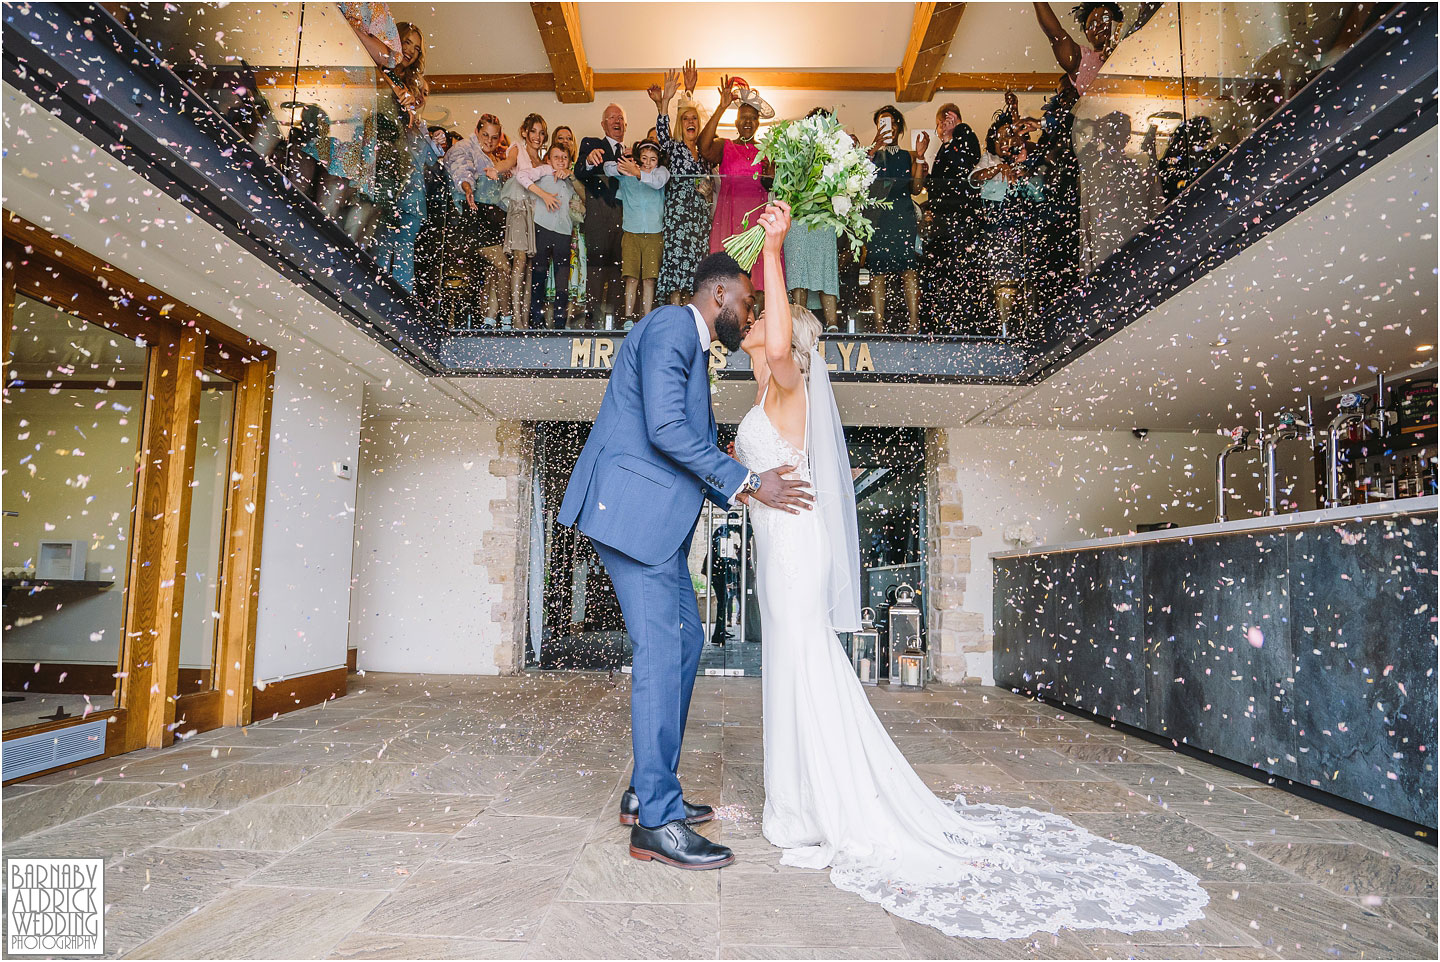 Priory Cottages balcony confetti photo